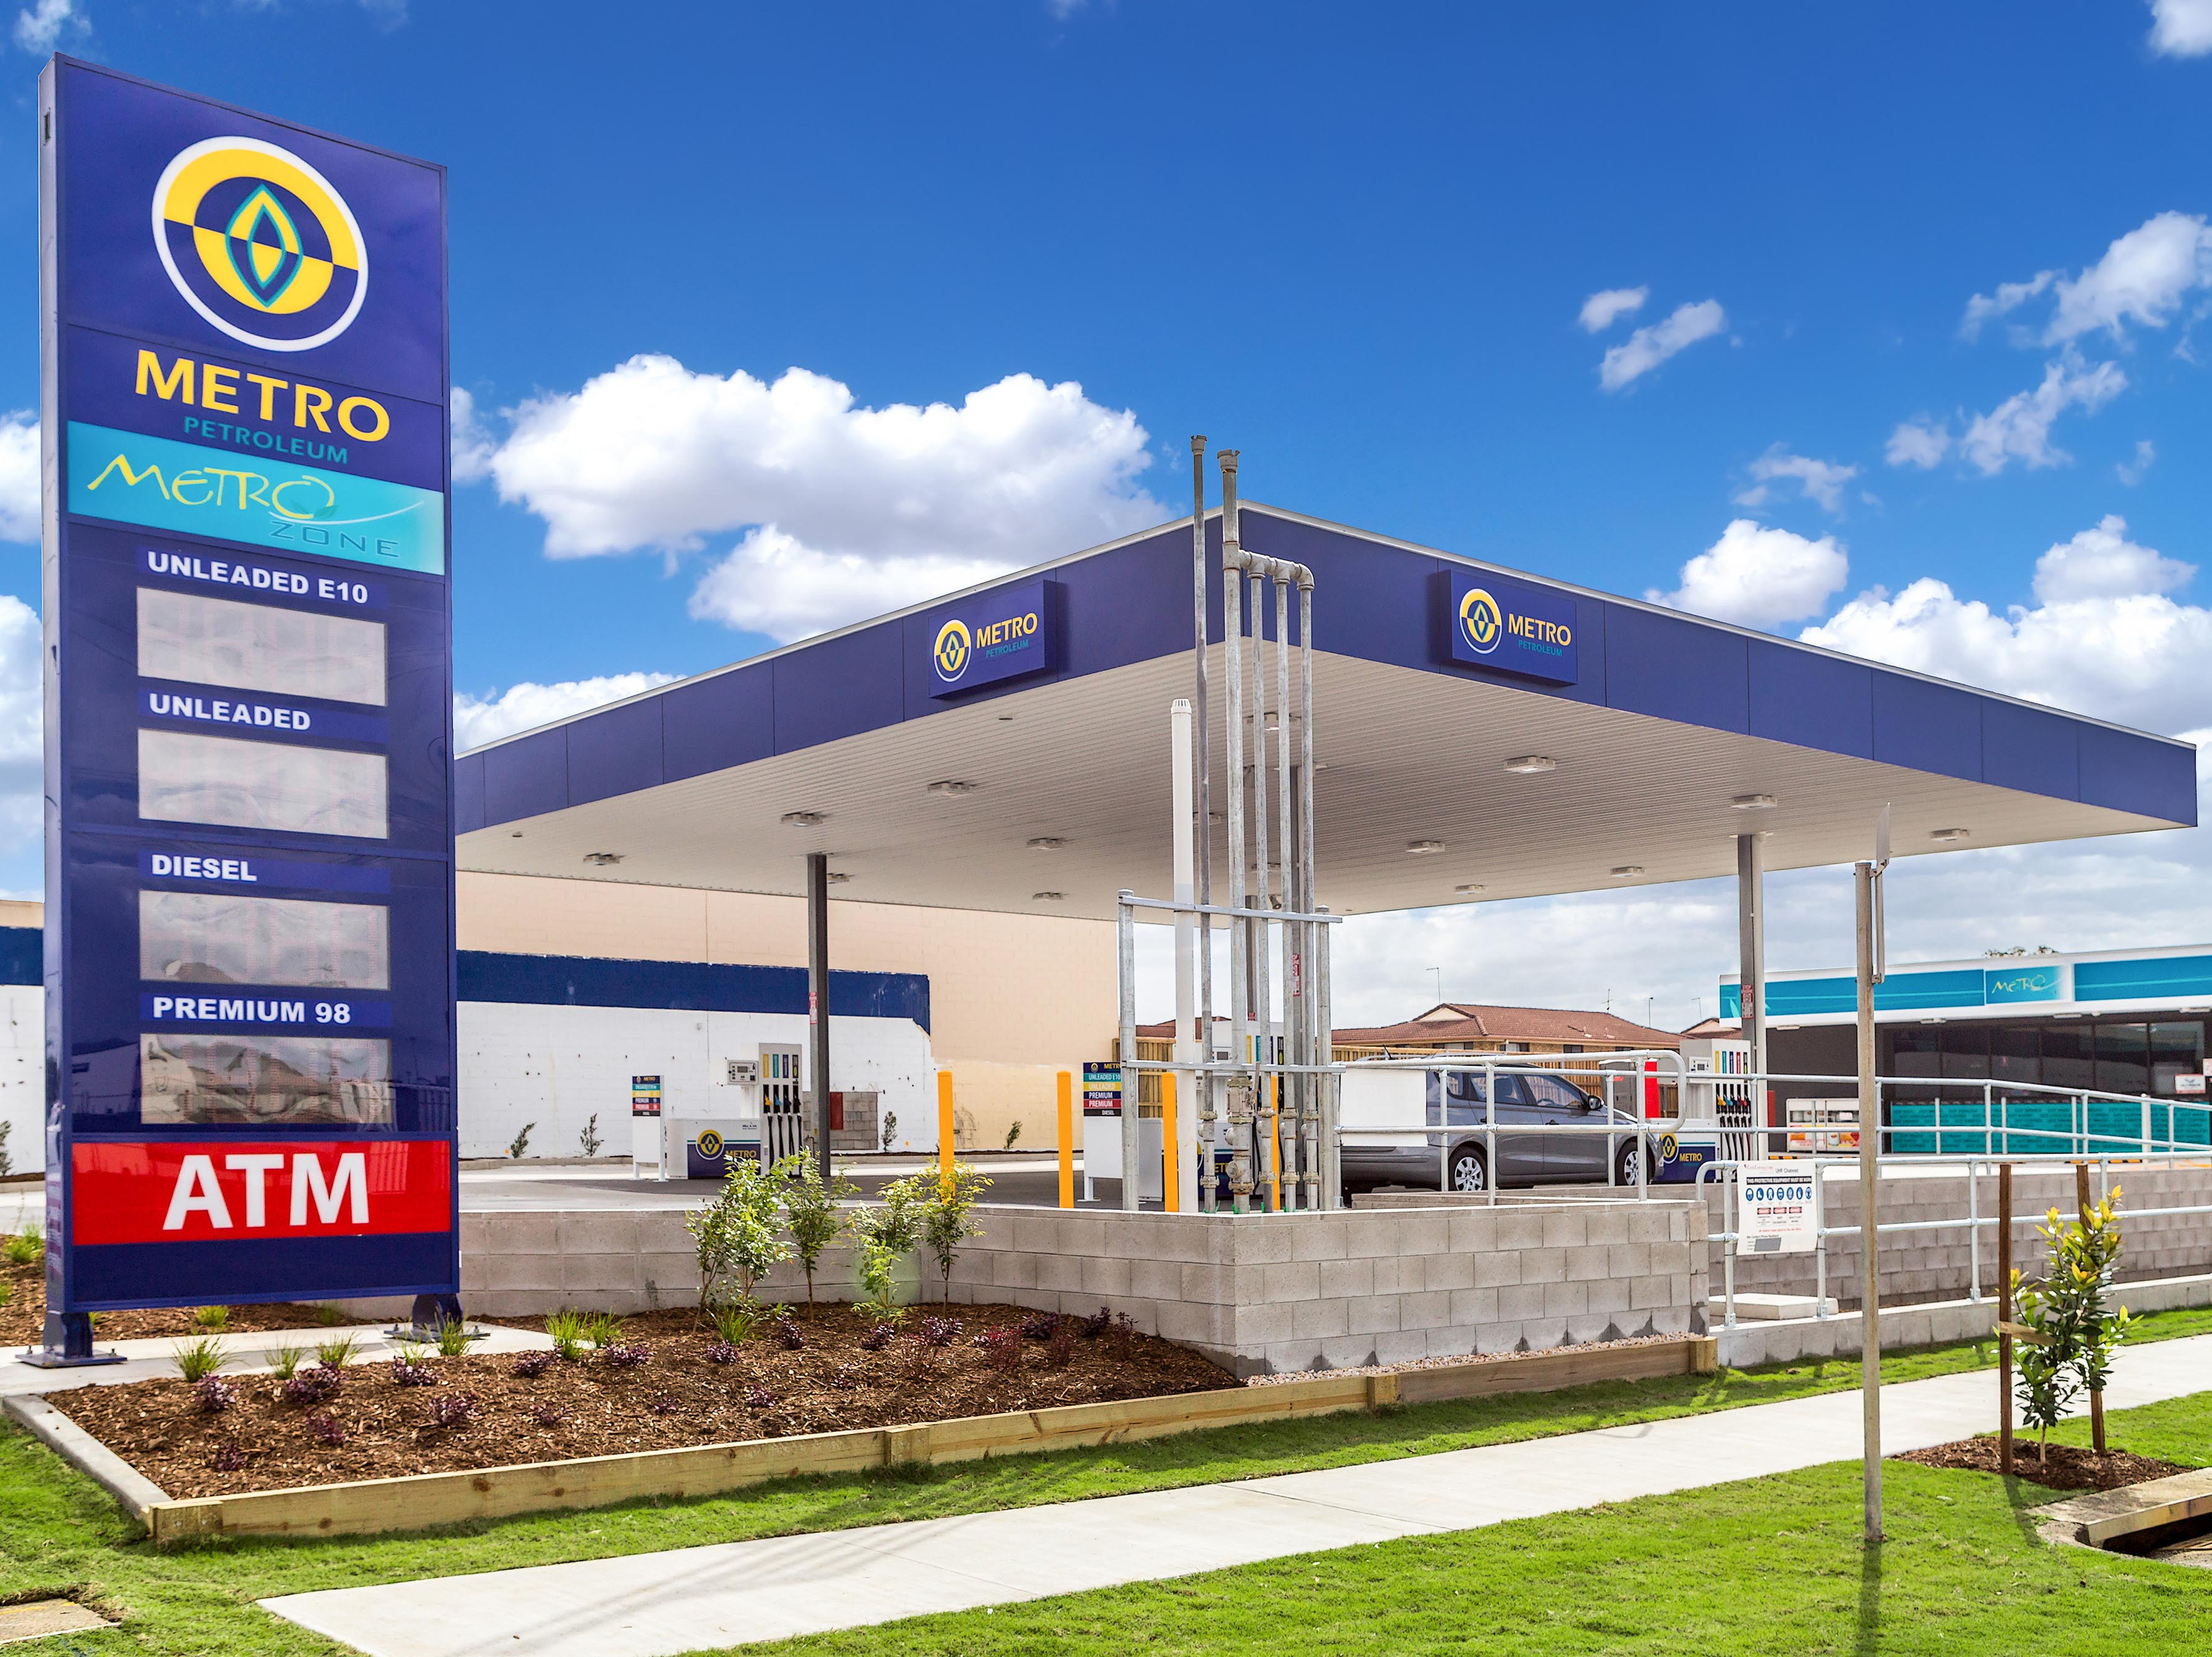 Brand New Metro Service Station Opening Early Mid August 2019